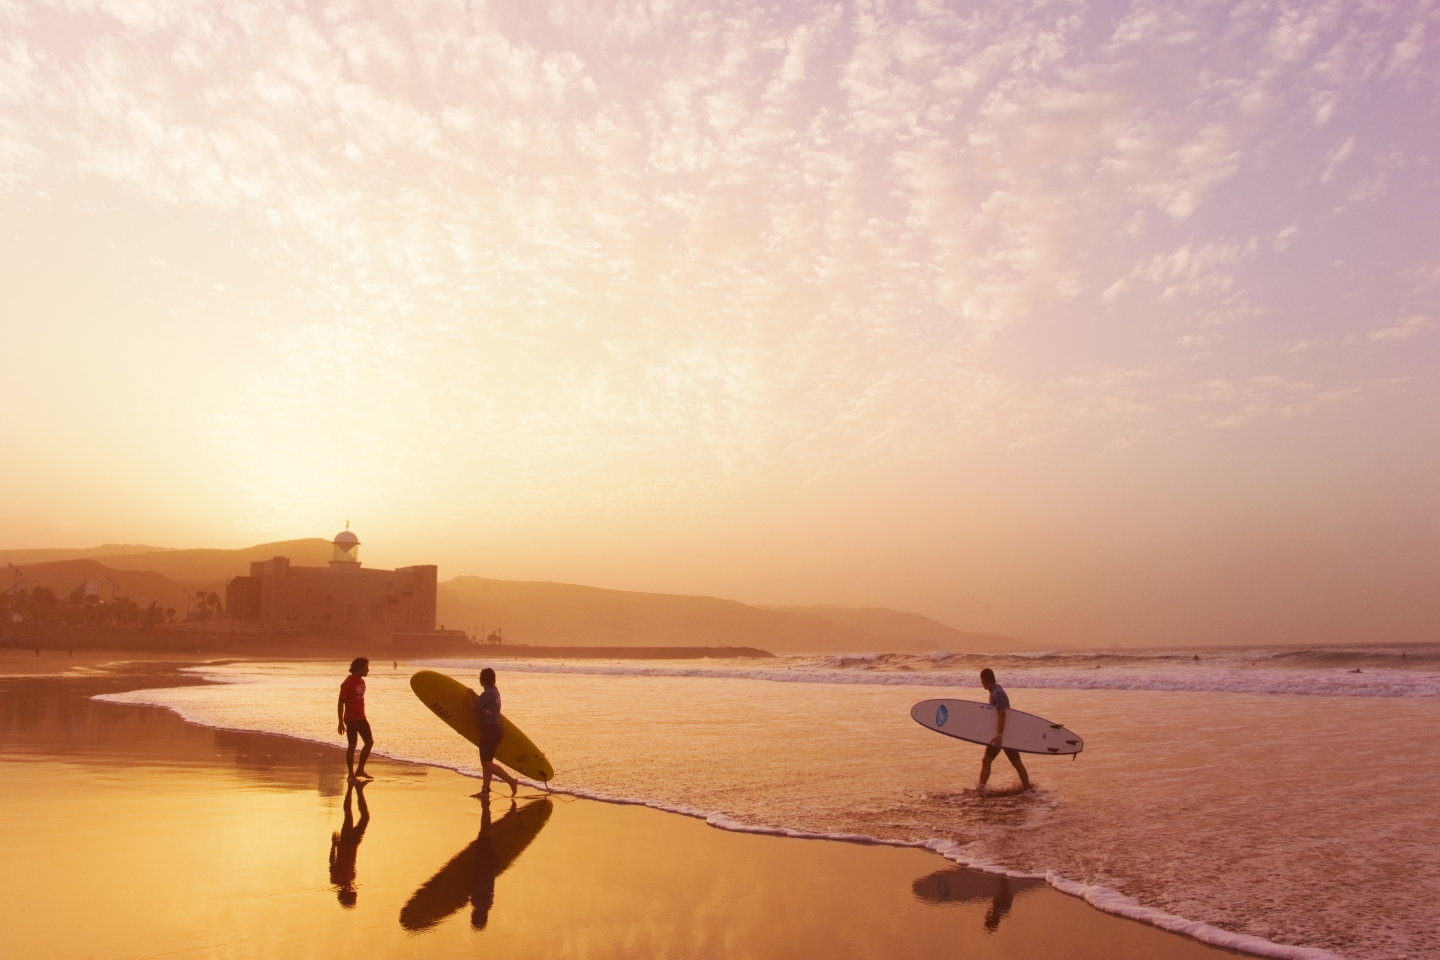 Surfers on Las Canteras beach